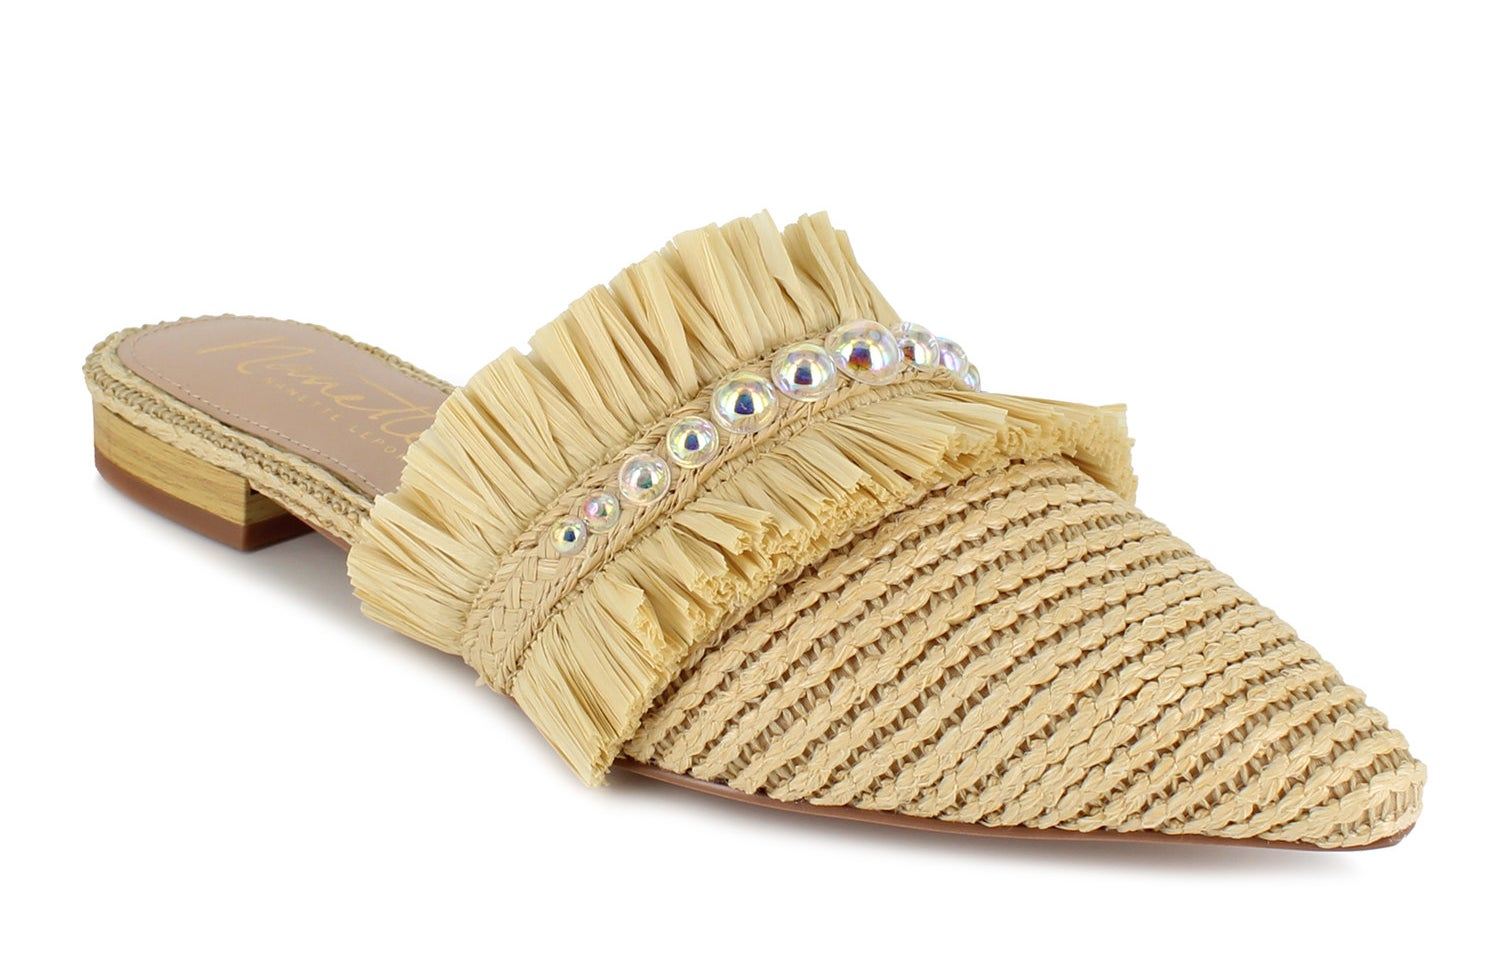 raffia pointed toe mule flats with fringe and rhinestone details